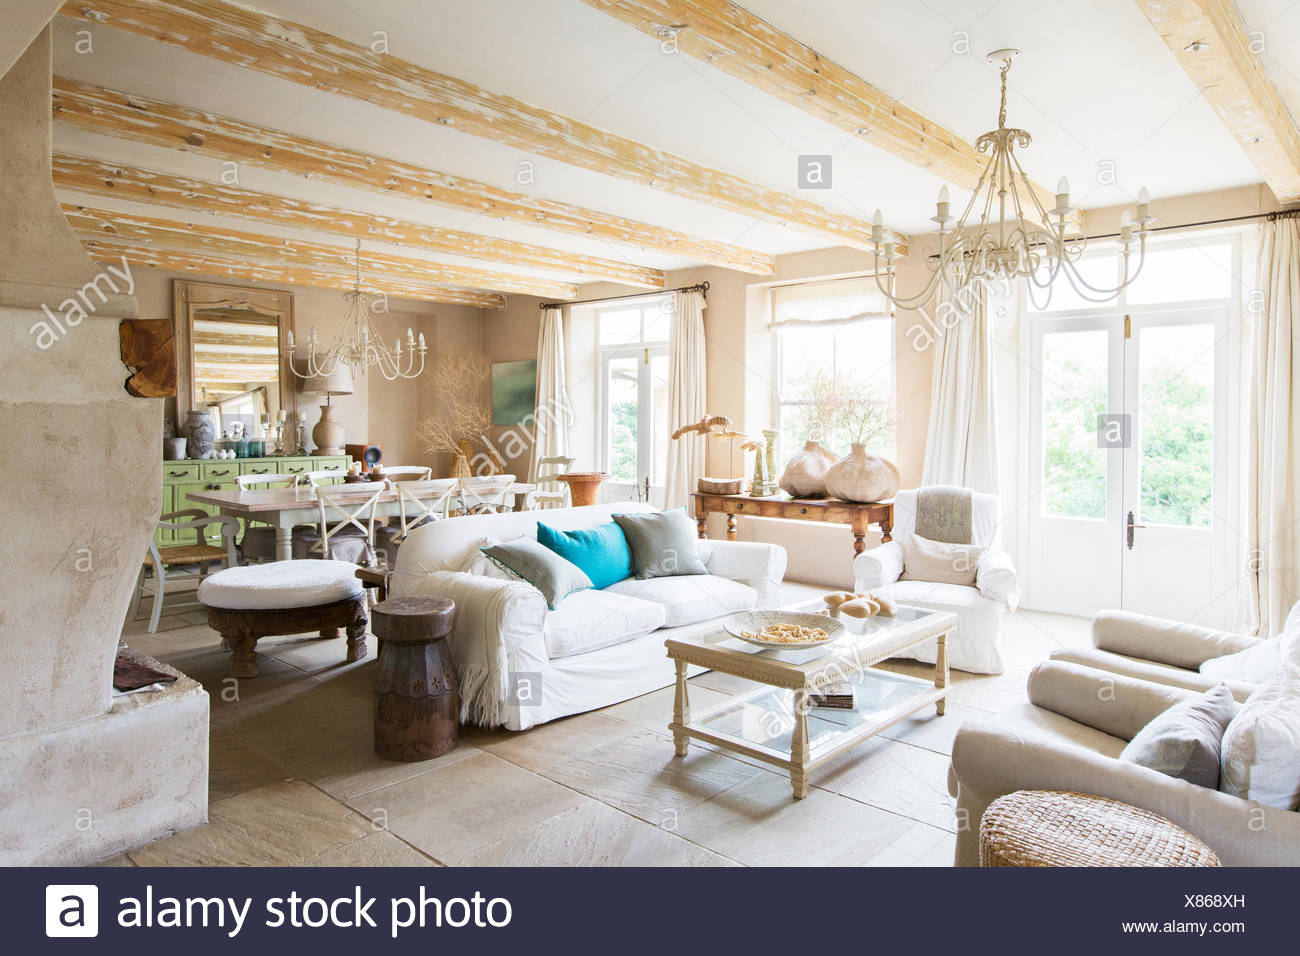 Dining and living area of rustic house - Stock Image